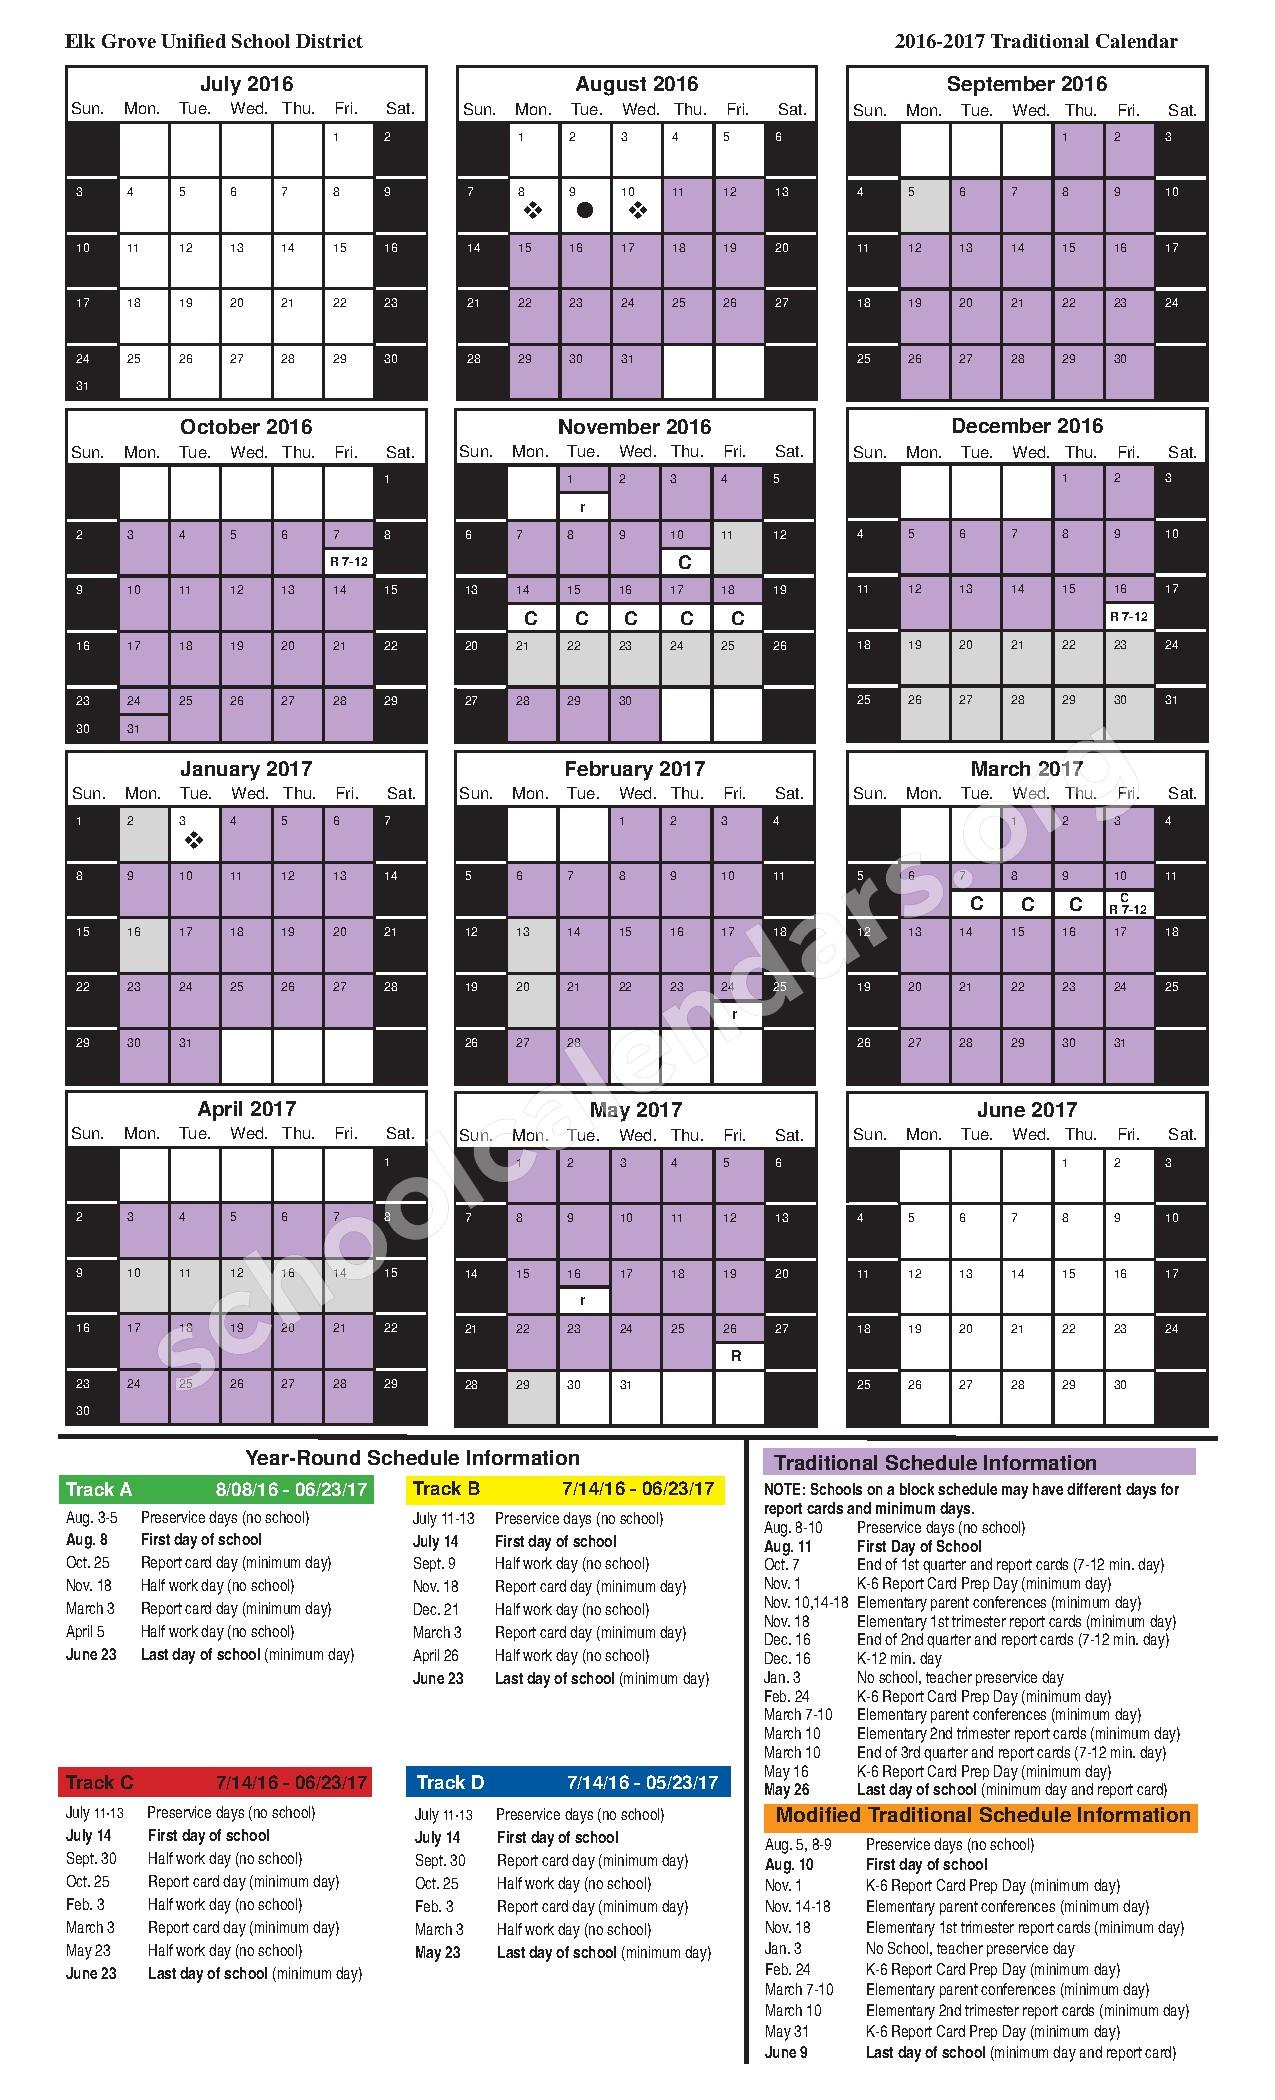 2016-2017 Traditional Calendar – Mary Tsukamoto Elementary School – page 1